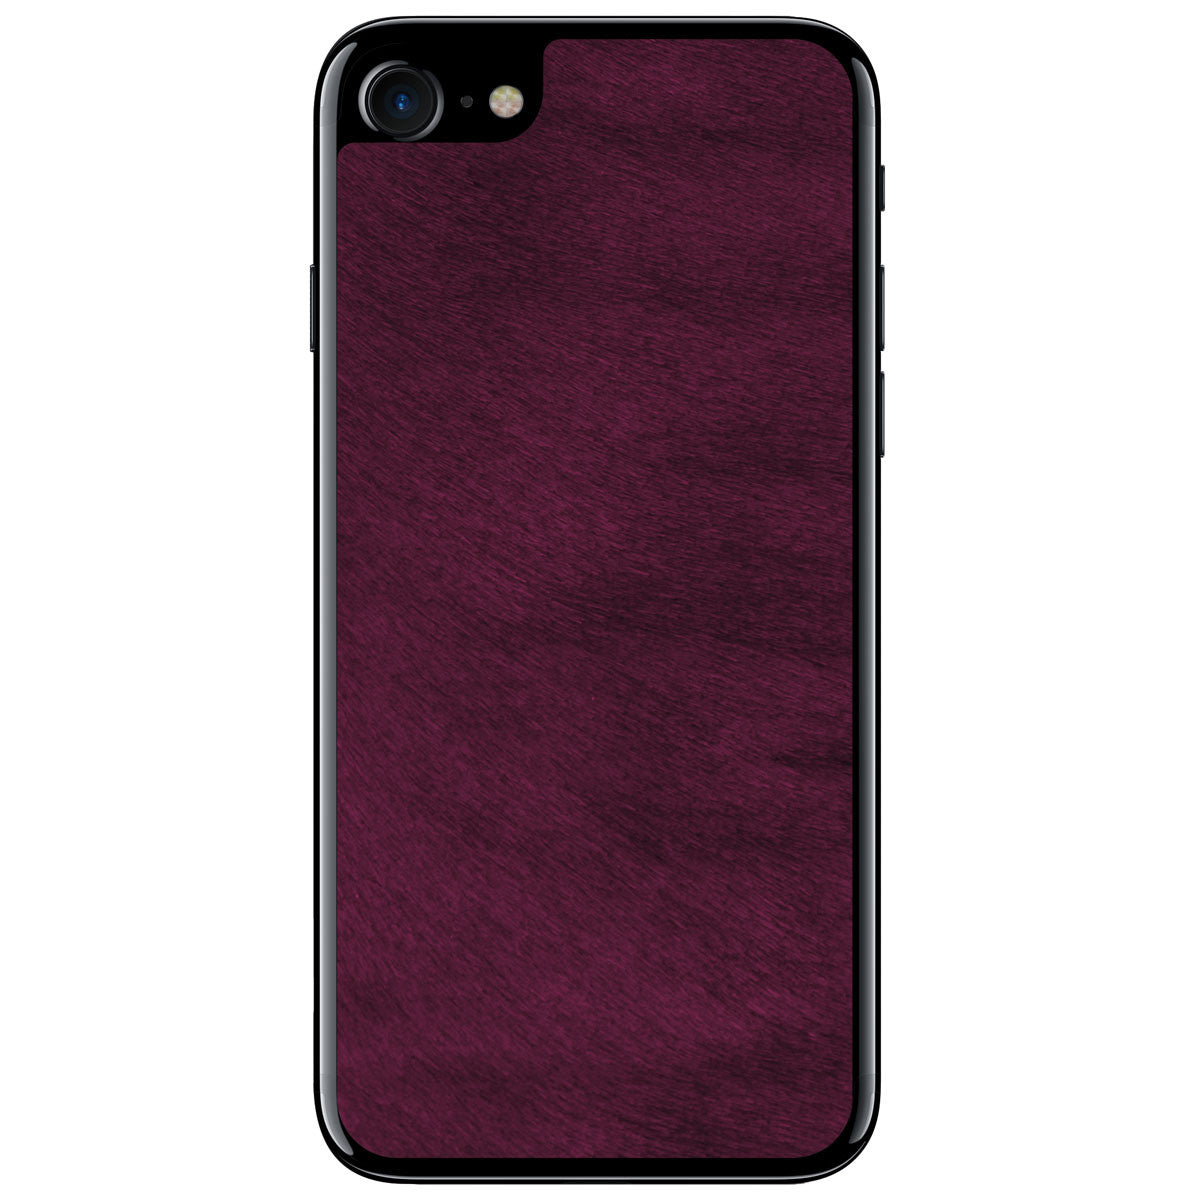 Violet Pony Hair iPhone 7 Leather Skin